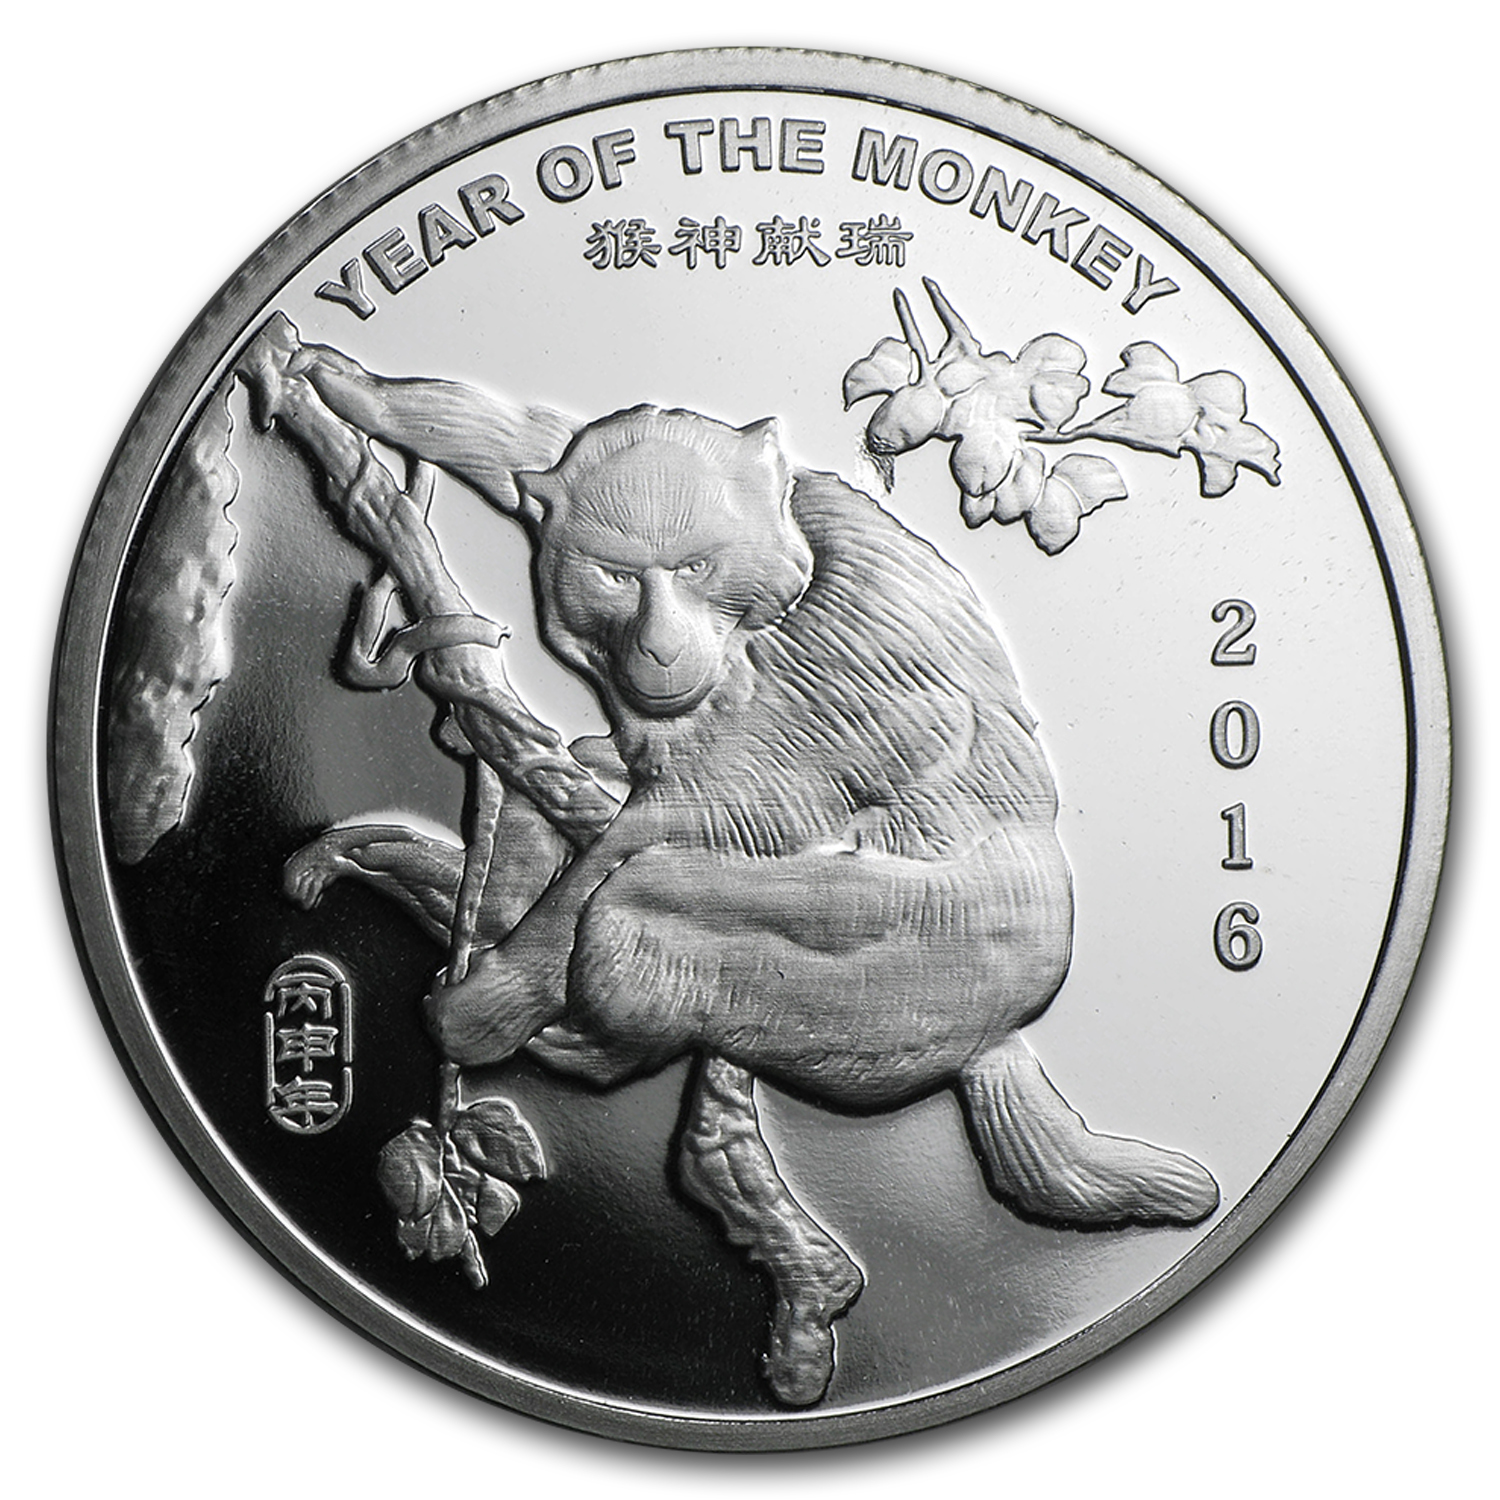 1 oz Silver Round - APMEX (2016 Year of the Monkey)